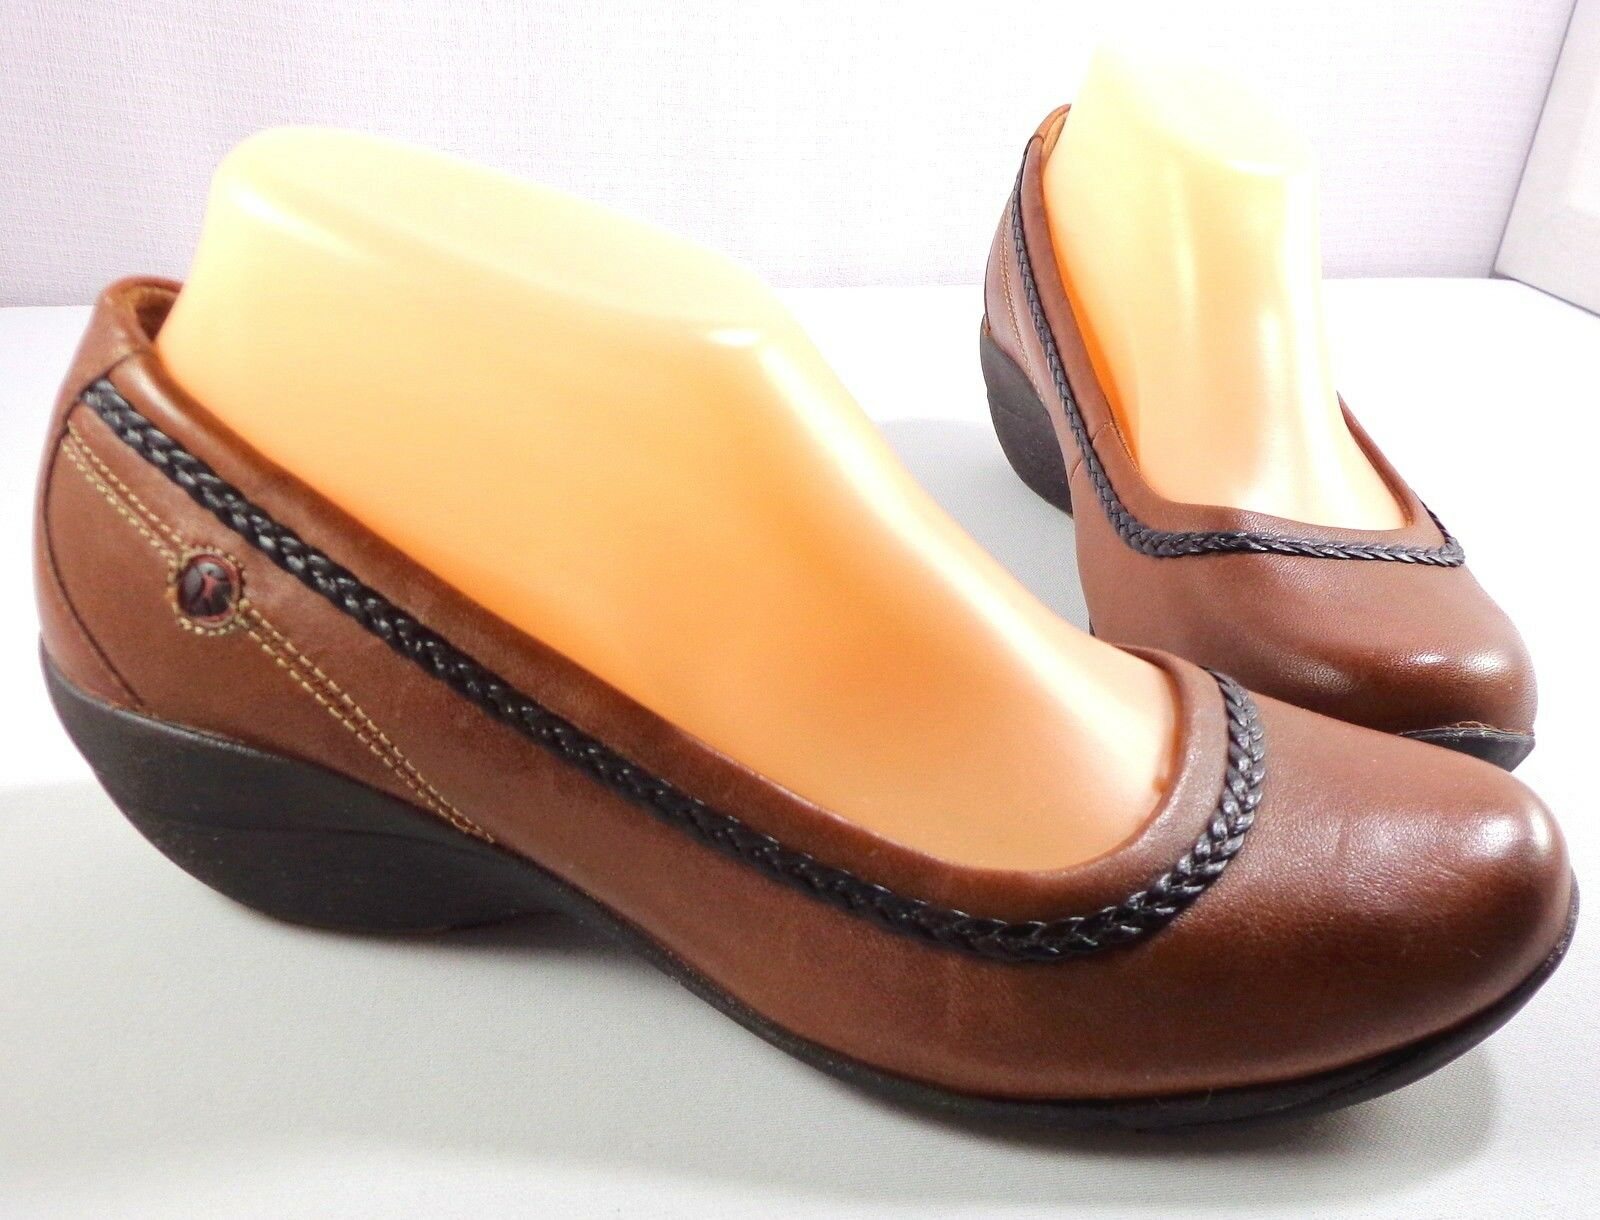 Hush Puppies Body shoes Womens Brown Leather Slip On Loafers Size 8 M